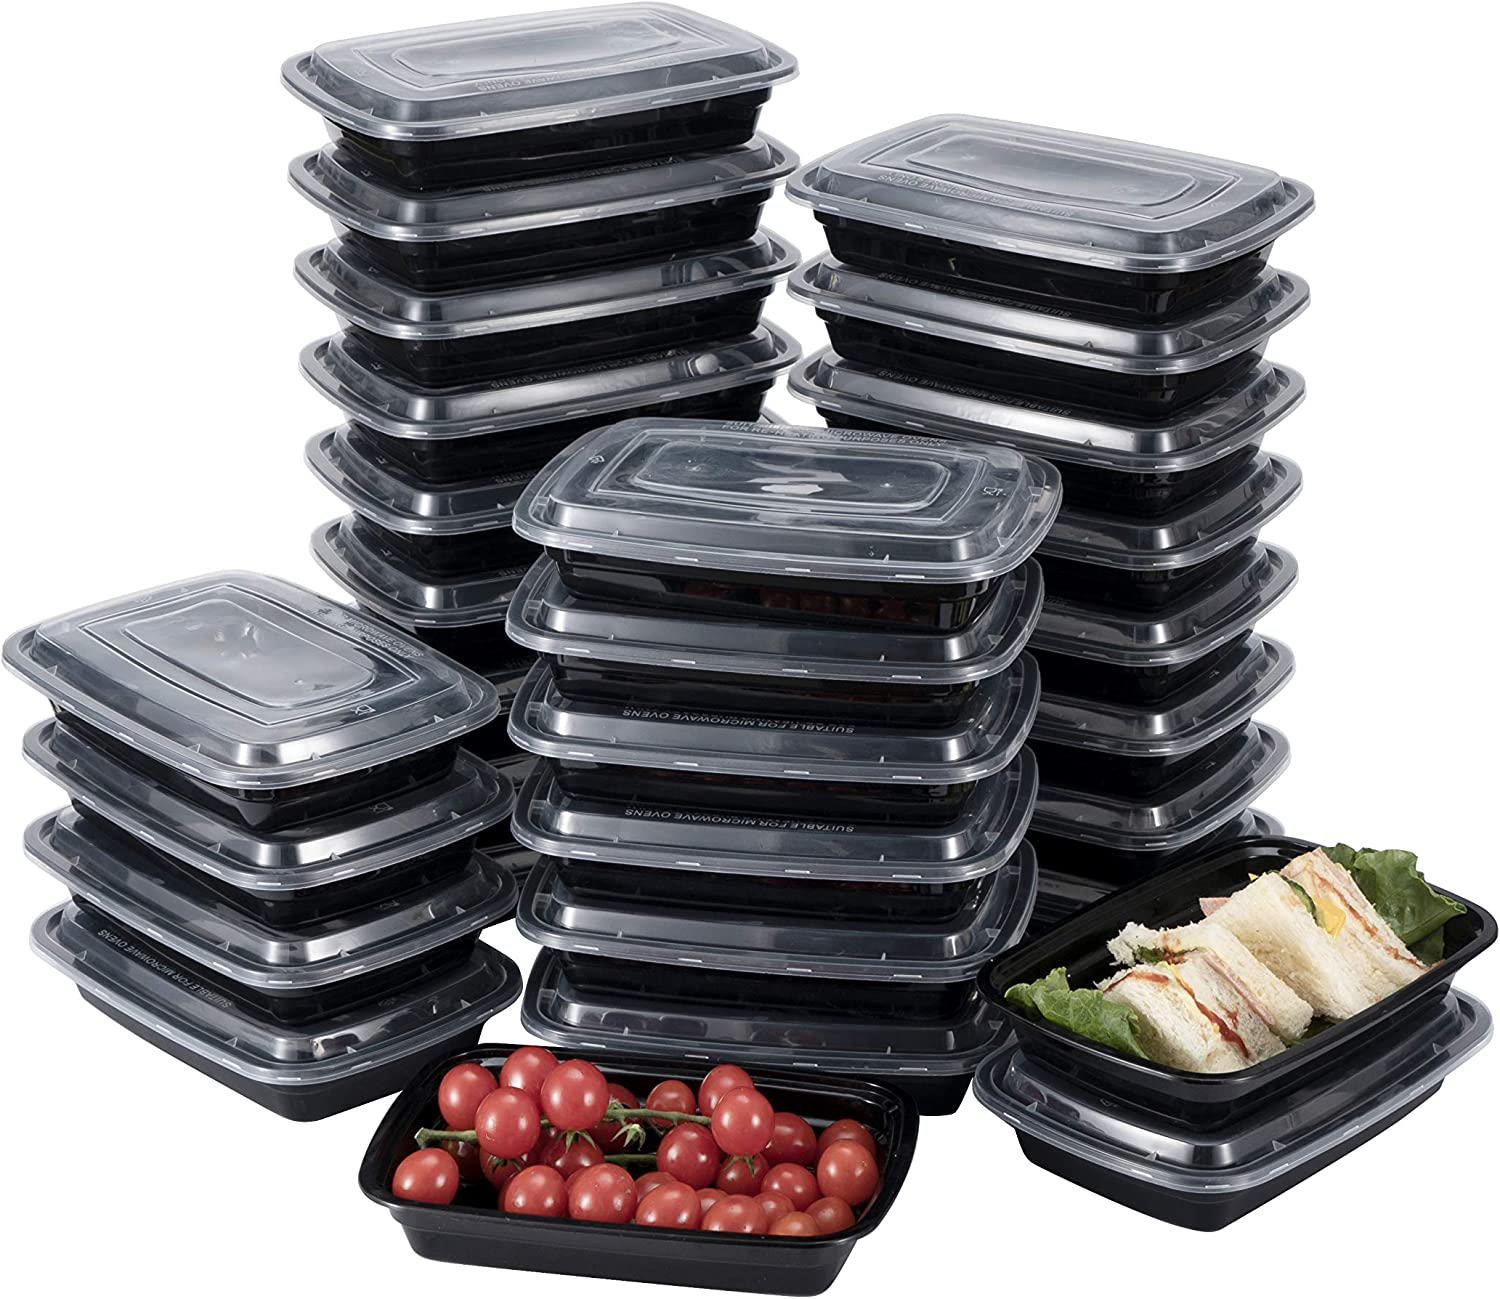 Meal Prep Containers [30 Pack] 1 Compartment with Lids, Food Storage Containers, Bento Box. BPA Free, Stackable, Microwave, Dishwasher and Freezer Safe, Portion Control (26 oz)